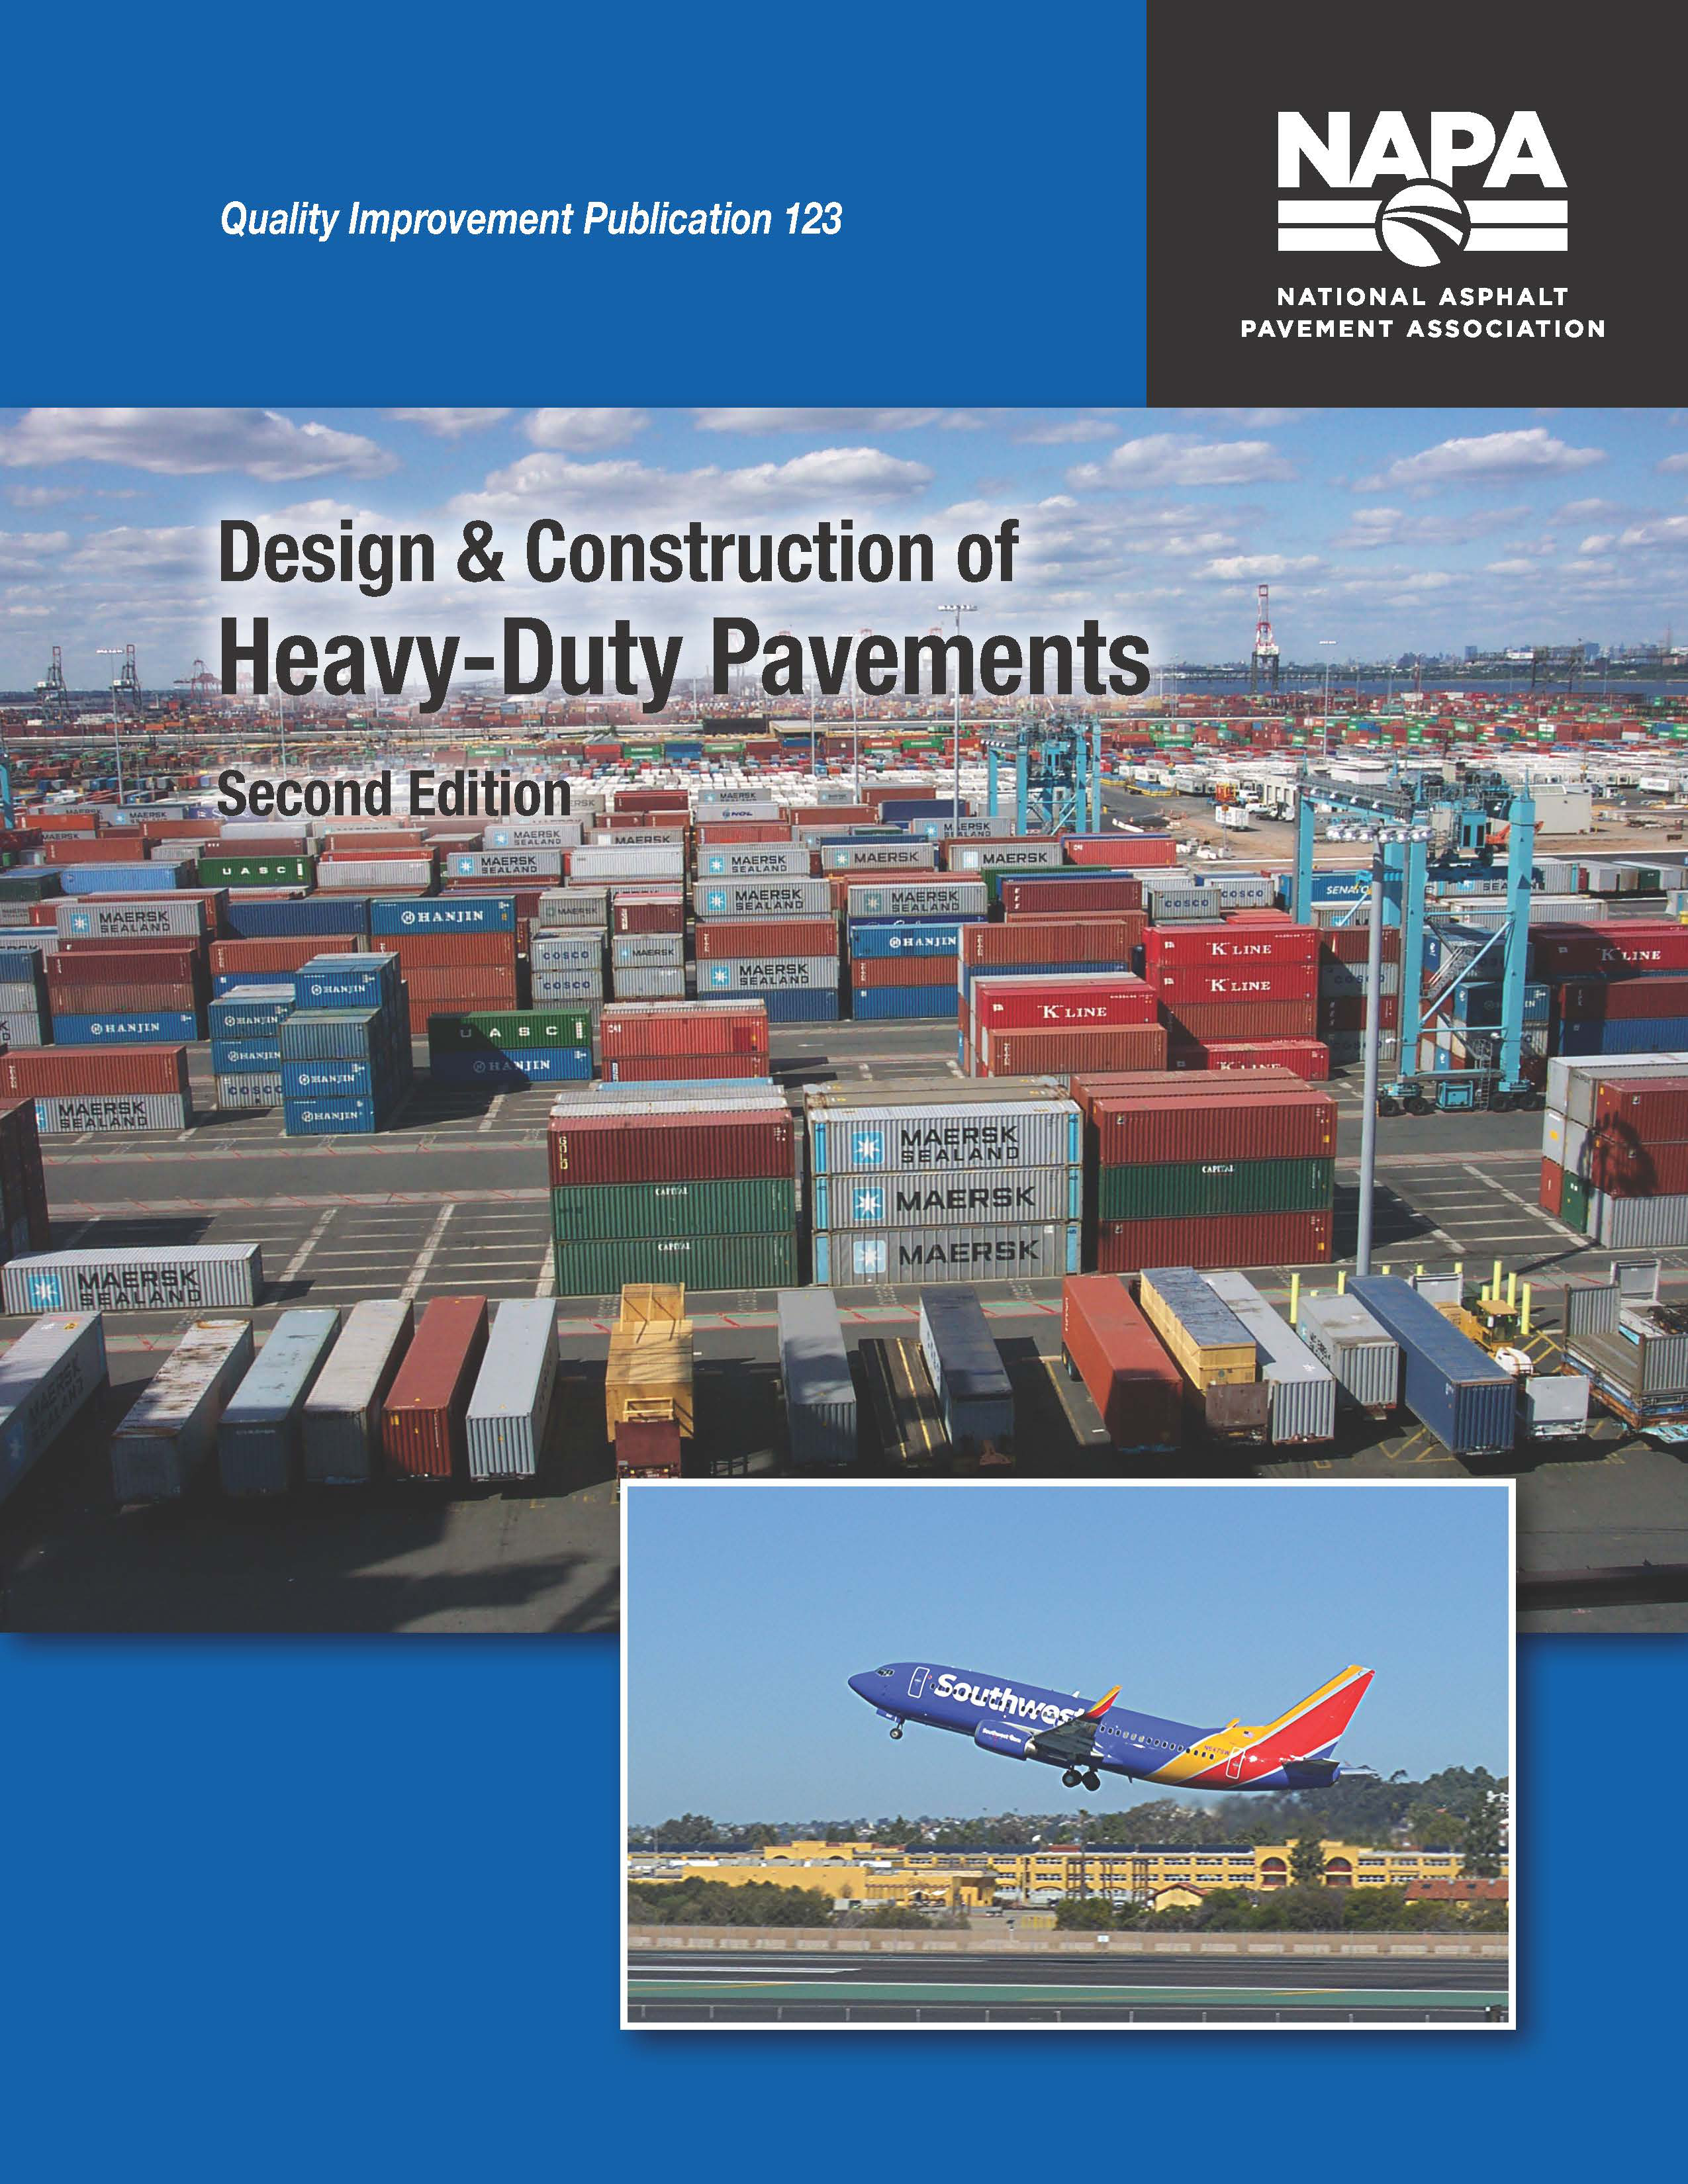 NAPA releases Design & Construction of Heavy-Duty Pavements 2nd edition